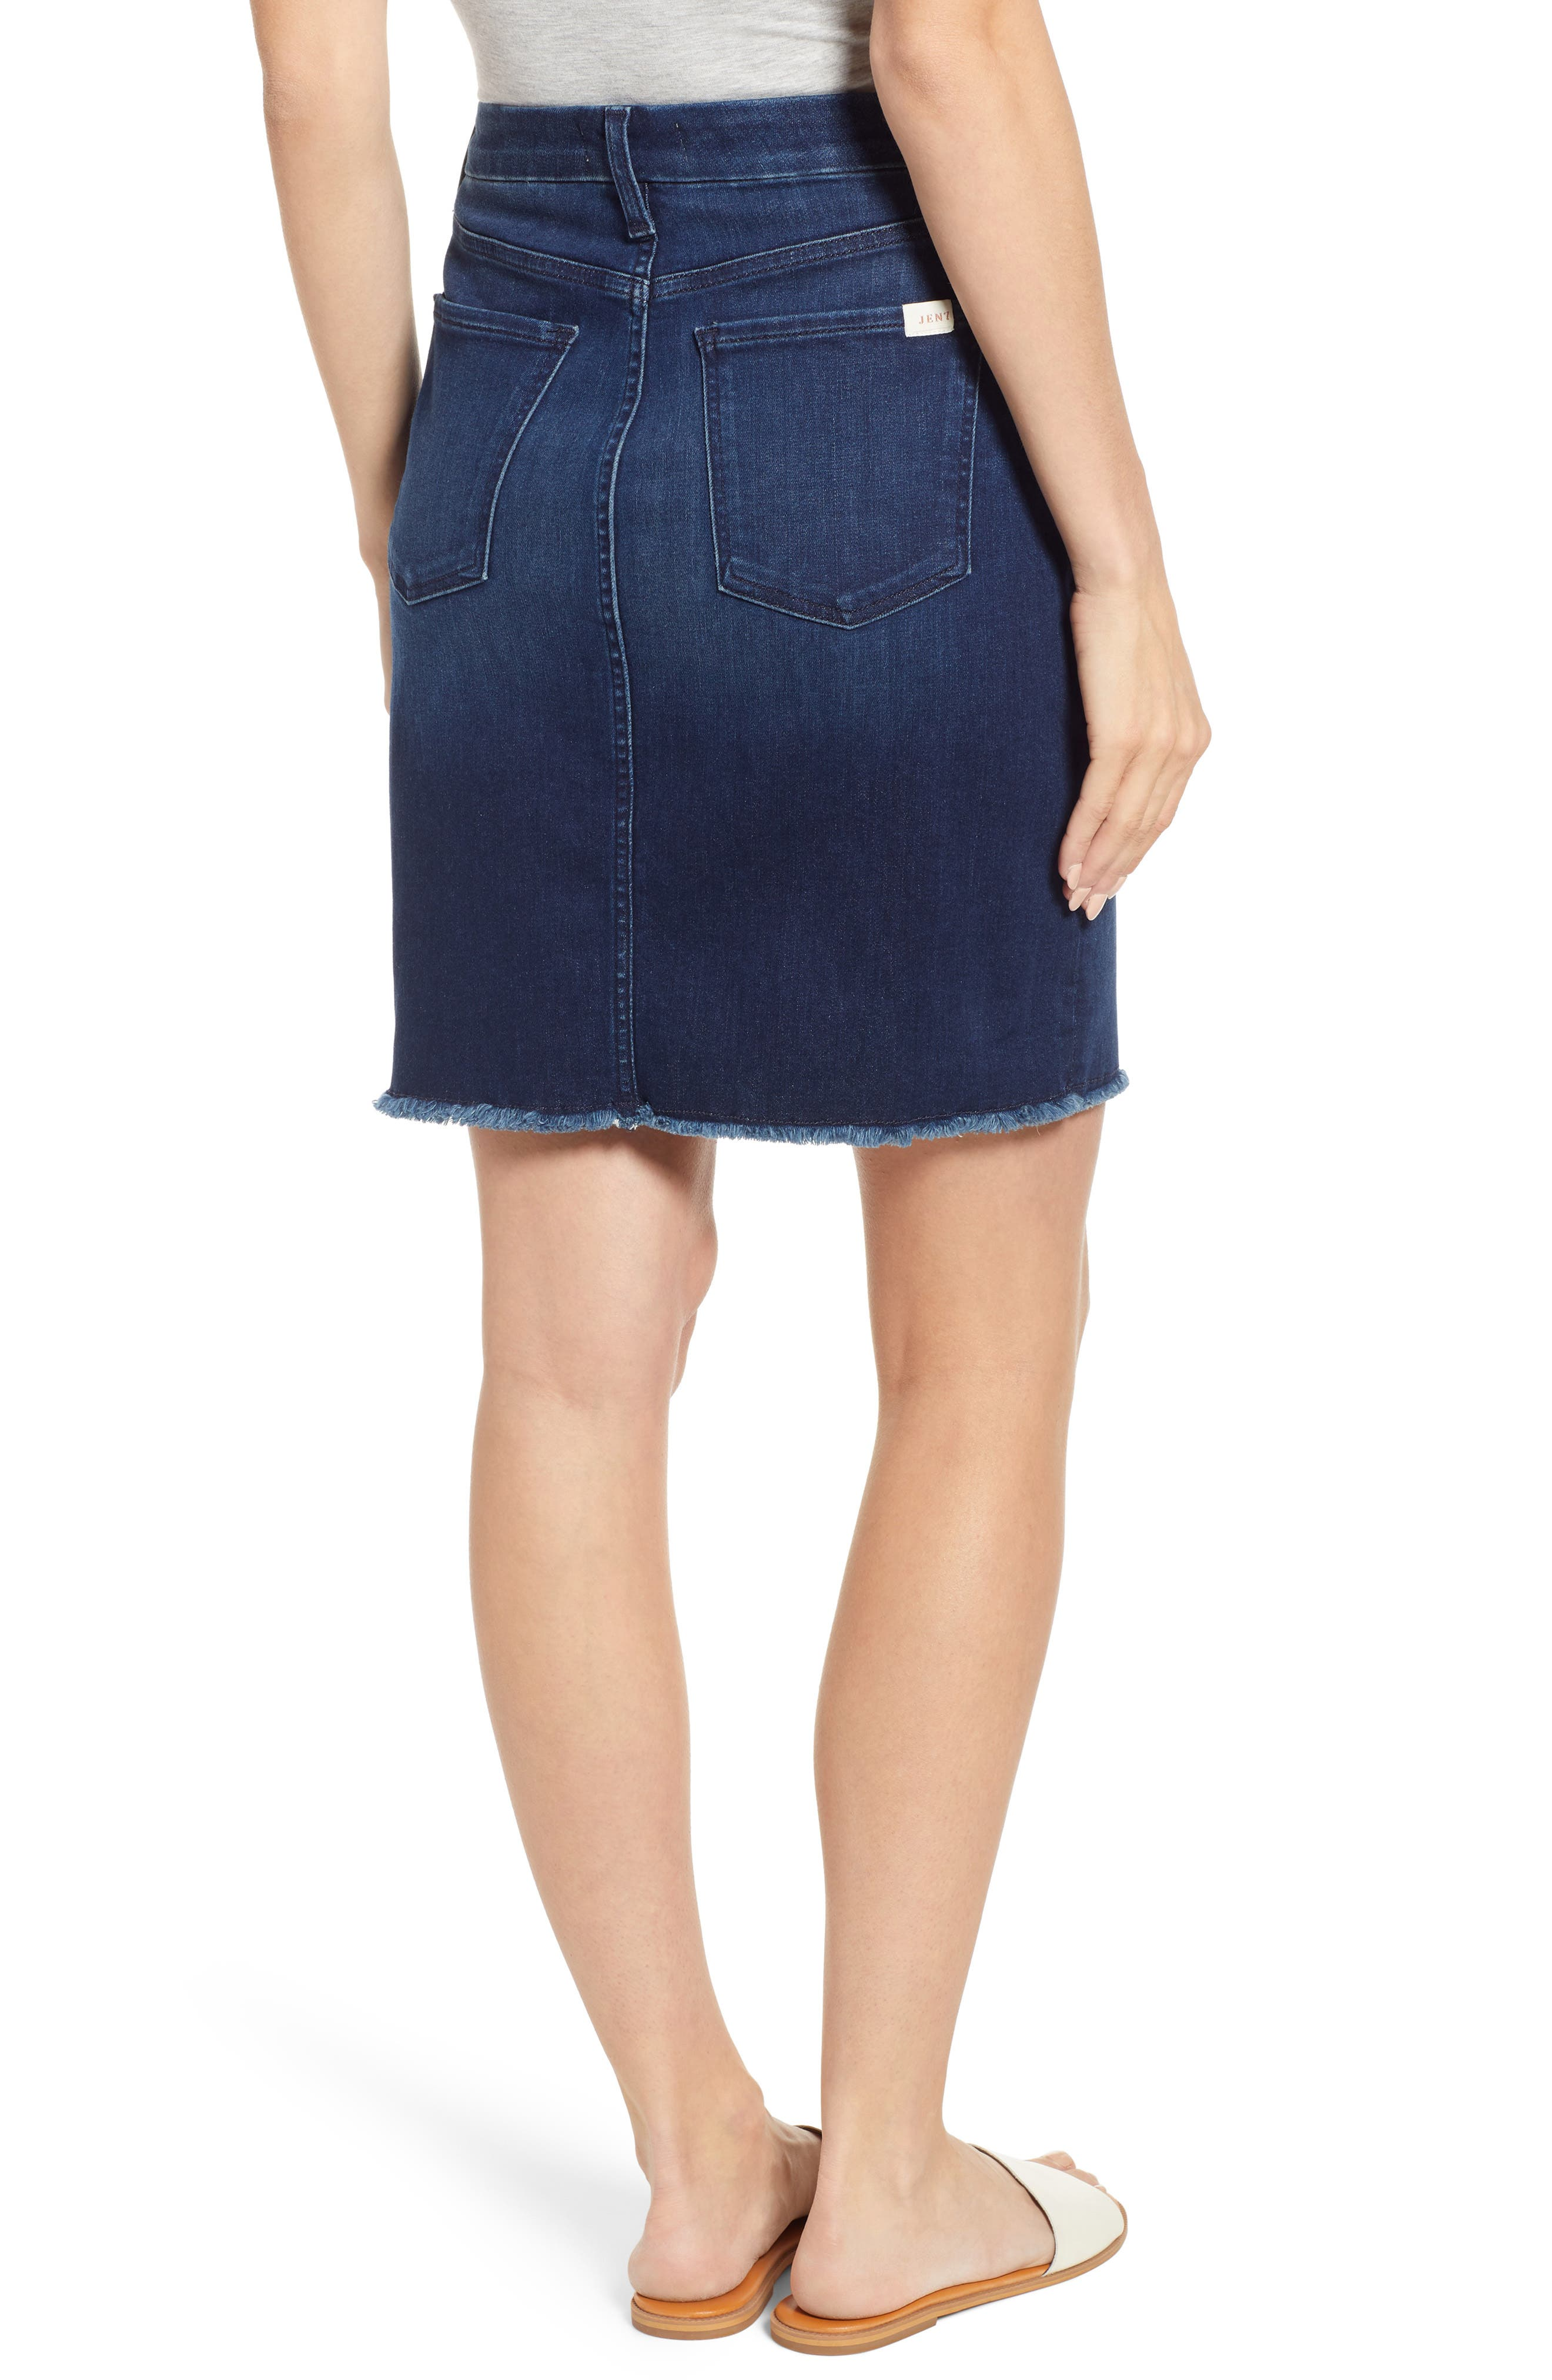 JEN7 BY 7 FOR ALL MANKIND, Raw Hem Denim Pencil Skirt, Alternate thumbnail 2, color, IMPERIAL INDIGO